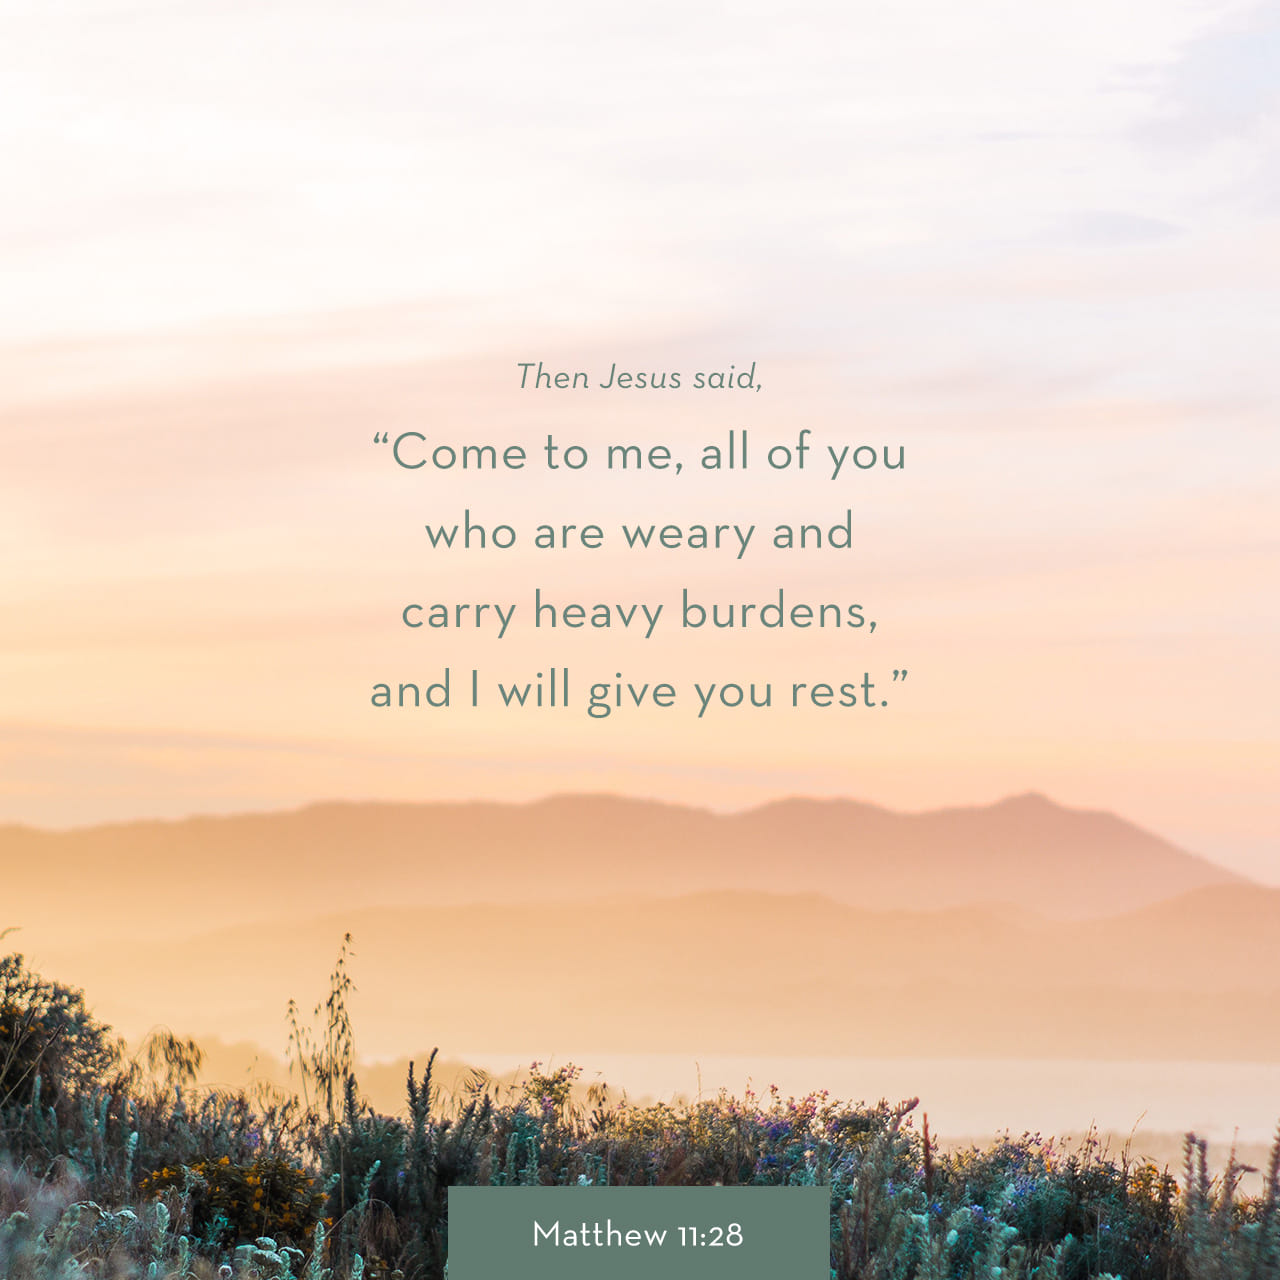 Come to me all of you who are weary and carry heavy burdens, and I will give you rest.